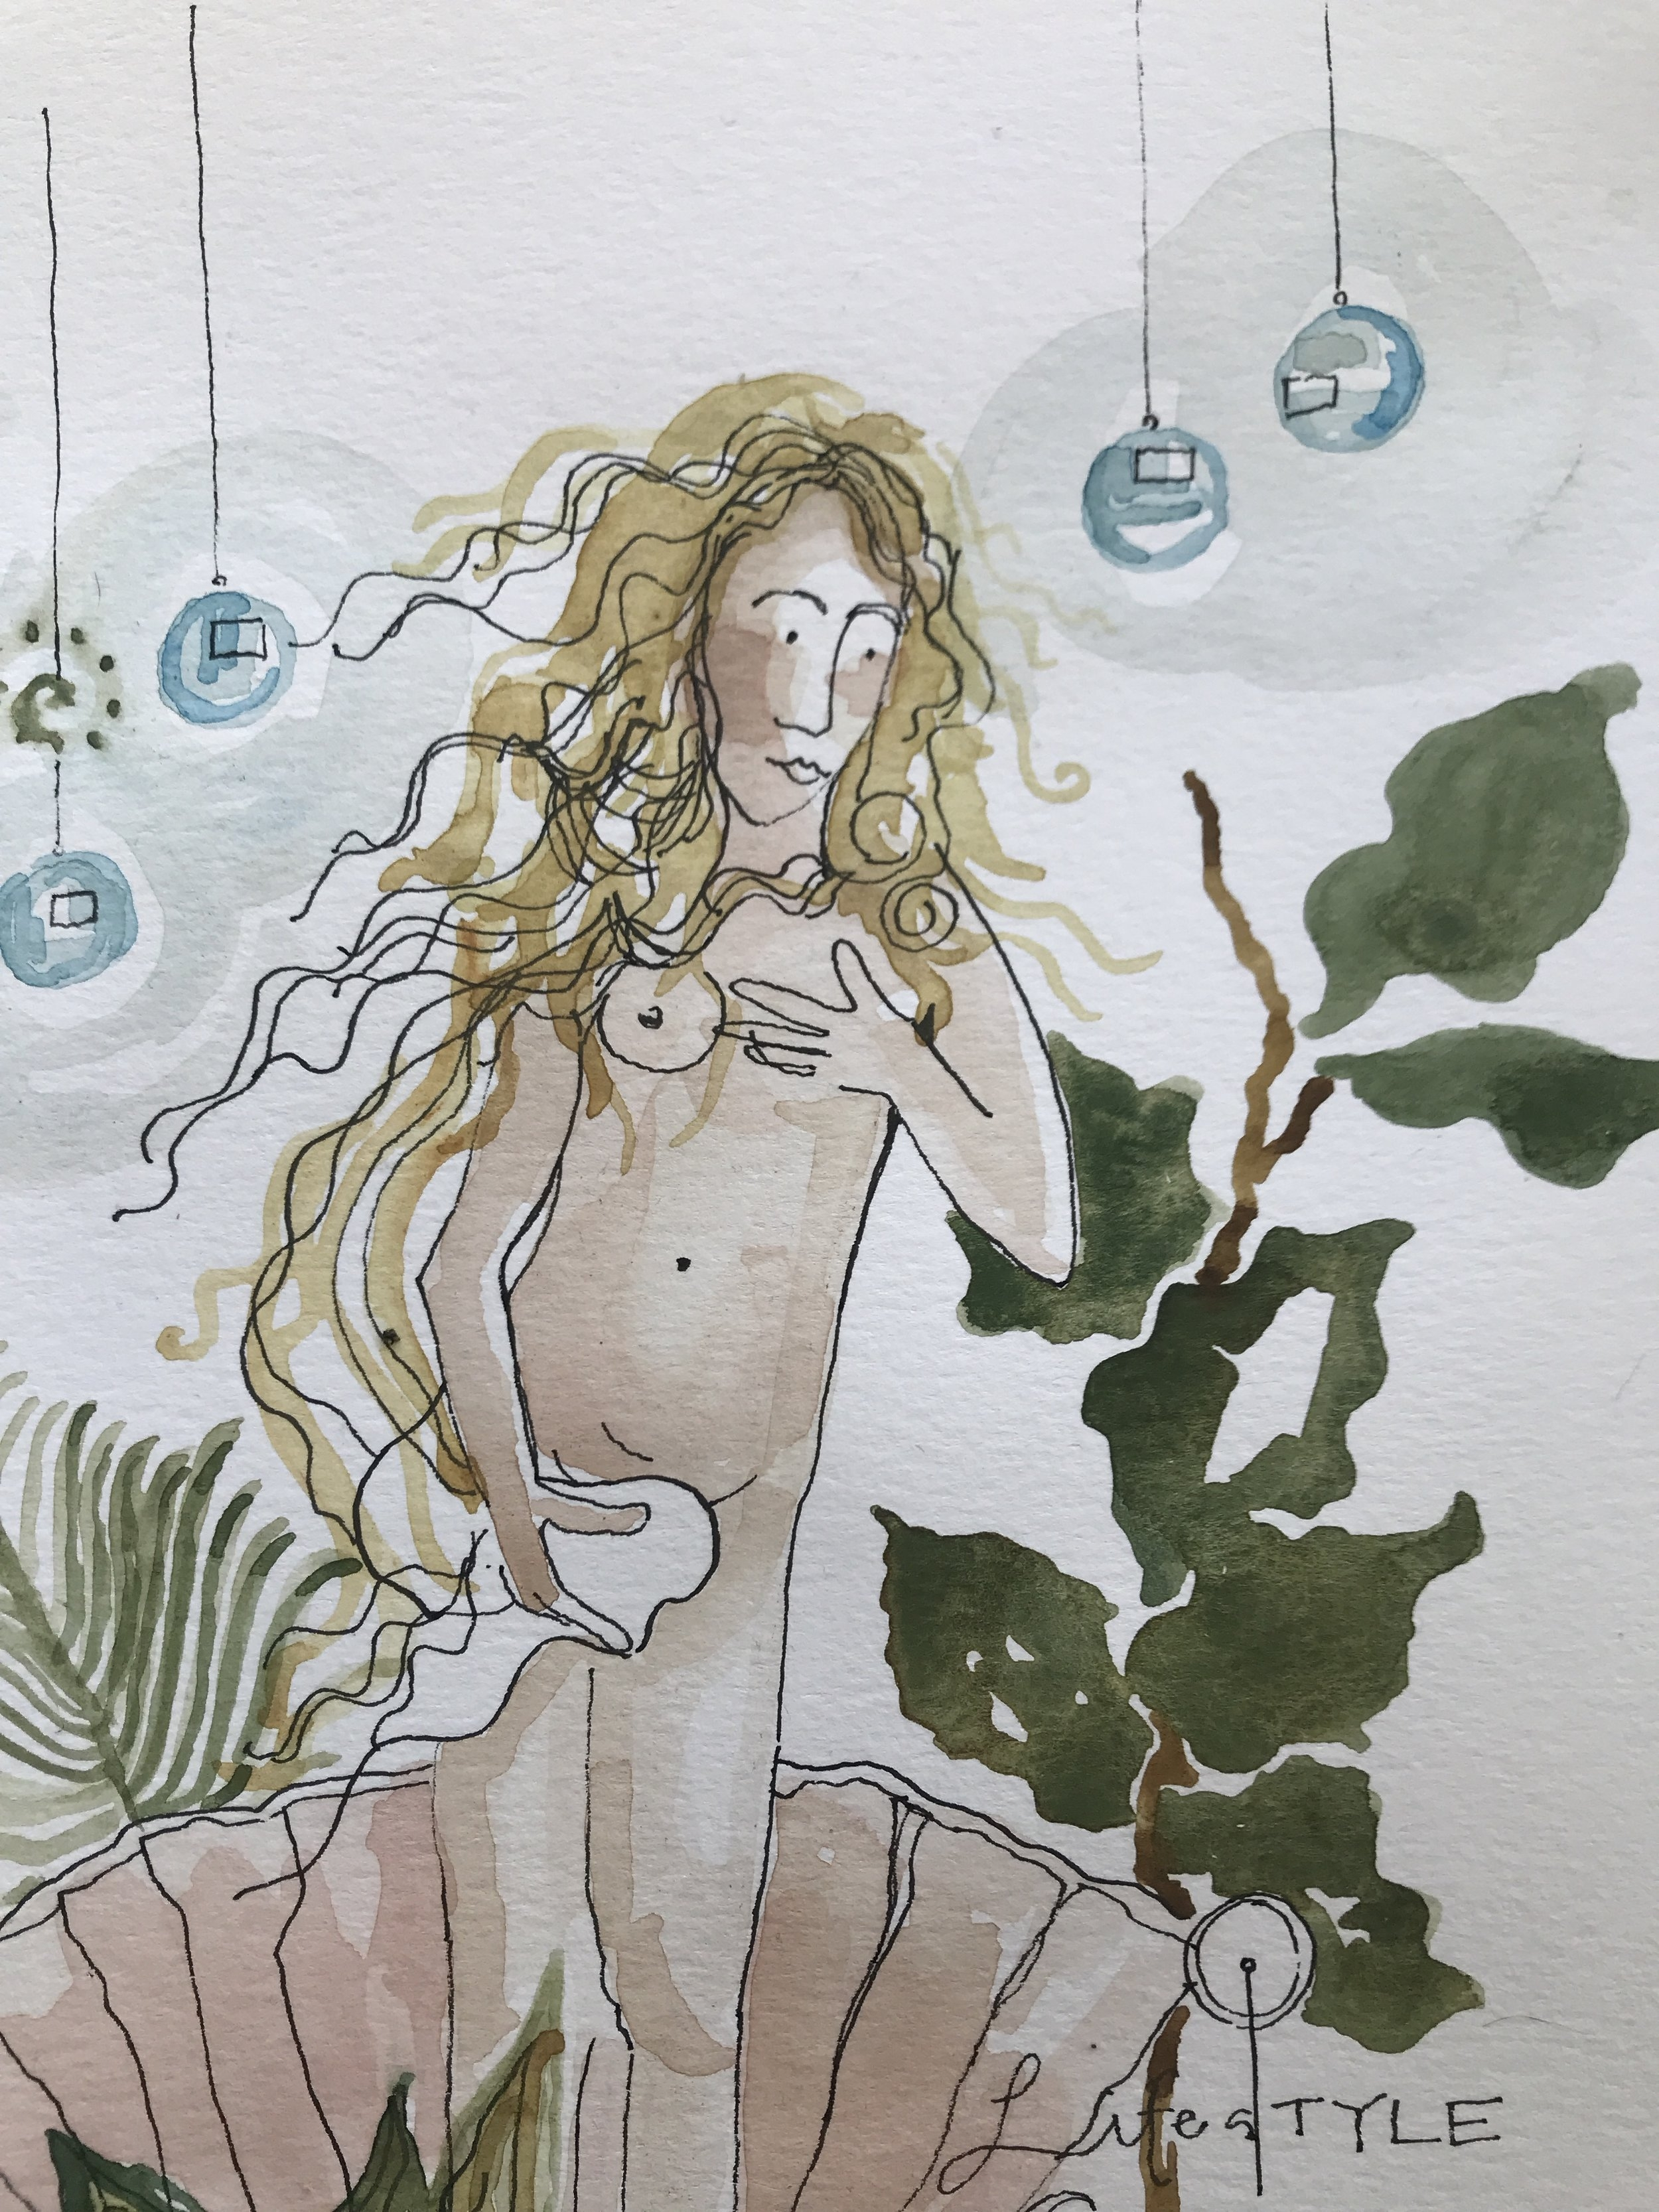 THIS IS AN IMPORTANT PIECE TO POST HERE ON THIS PAGE OF CLASSES FOR WOMEN...BECAUSE MY ART, AND MY ABILITY TO OFFER CLASSES TO OTHER WOMEN IS A DIRECT REFLECTION OF MY HEALING PROCESS....MY GAINING GROUND TO BE A HUMAN WITH AGENCY AND RESPONSES.  THERE ARE SOME WHO GATHER HERE TO READ WHO MIGHT NOT COMPREHEND ALL OF THE PIECES OF MY STORY...BUT THE STORY IS WITHIN THE ART....AS IS YOURS'.  THE ART WORK IS ONGOING....A STEADY, MINDFUL MOMENTUM. THE PIECES OF THE WORK SEEM TO UNFOLD AS THE TIMING IS JUST RIGHT. I HAVE LEARNED TO WALK GENTLY...CAREFULLY...AND WITH HANDS STRETCHED OUT WIDE. WHATEVER THE FOCUS, THE KEY HAS BEEN TO SEE...KEEPING MY EYES OPEN WIDE TO REALITIES. WHETHER IT IS PAINTING, OR TEACHING, HAVING LUNCH WITH A FRIEND, BEING ALONE FOR DAYS, HIKING IN A GROUP, SITTING IN THE HAIRDRESSER'S CHAIR, EATING A MEAL WITH ALL OR ONE OF MY ADULT-CHILDREN...  I WORK TO SEE.  I AM A WOMAN WHO PAINTS, AND IS NO LONGER AFRAID.